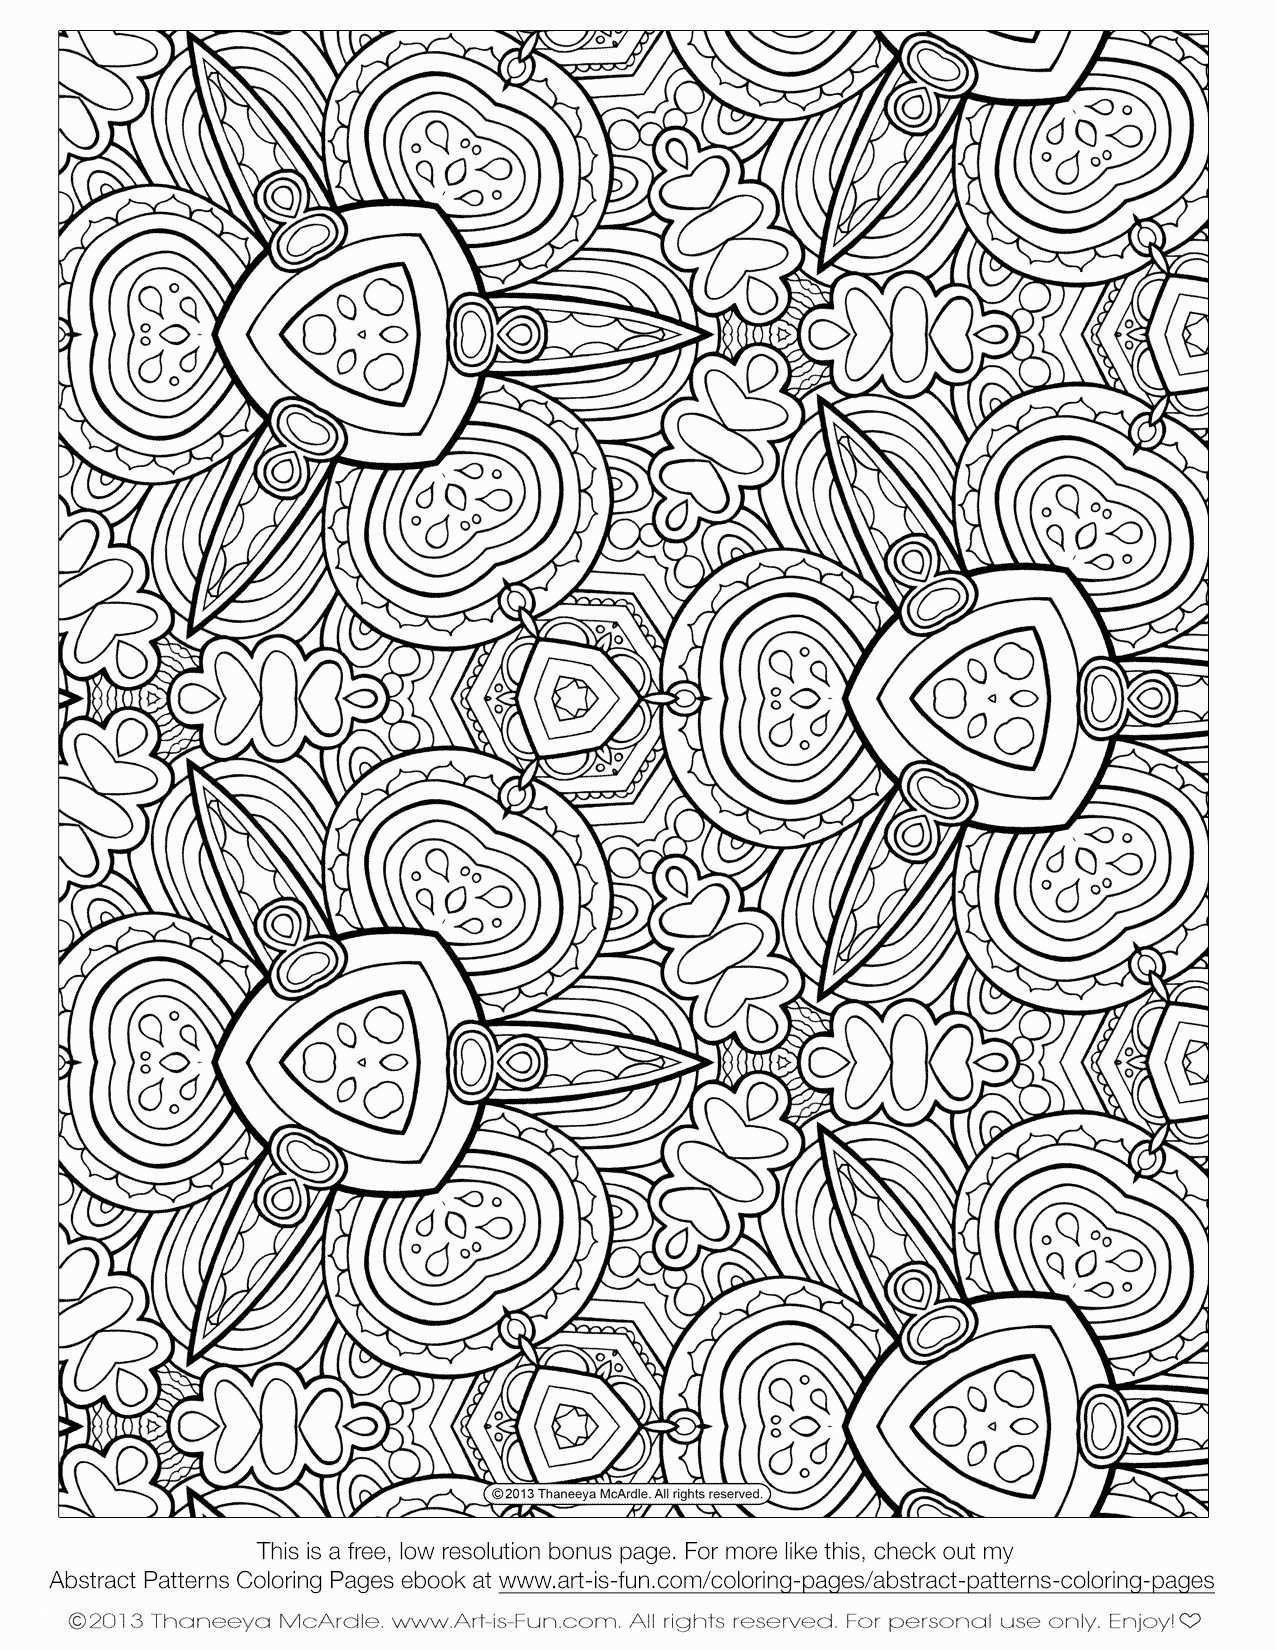 Candy Corn Coloring Page Beautiful Corn Coloring Page Best